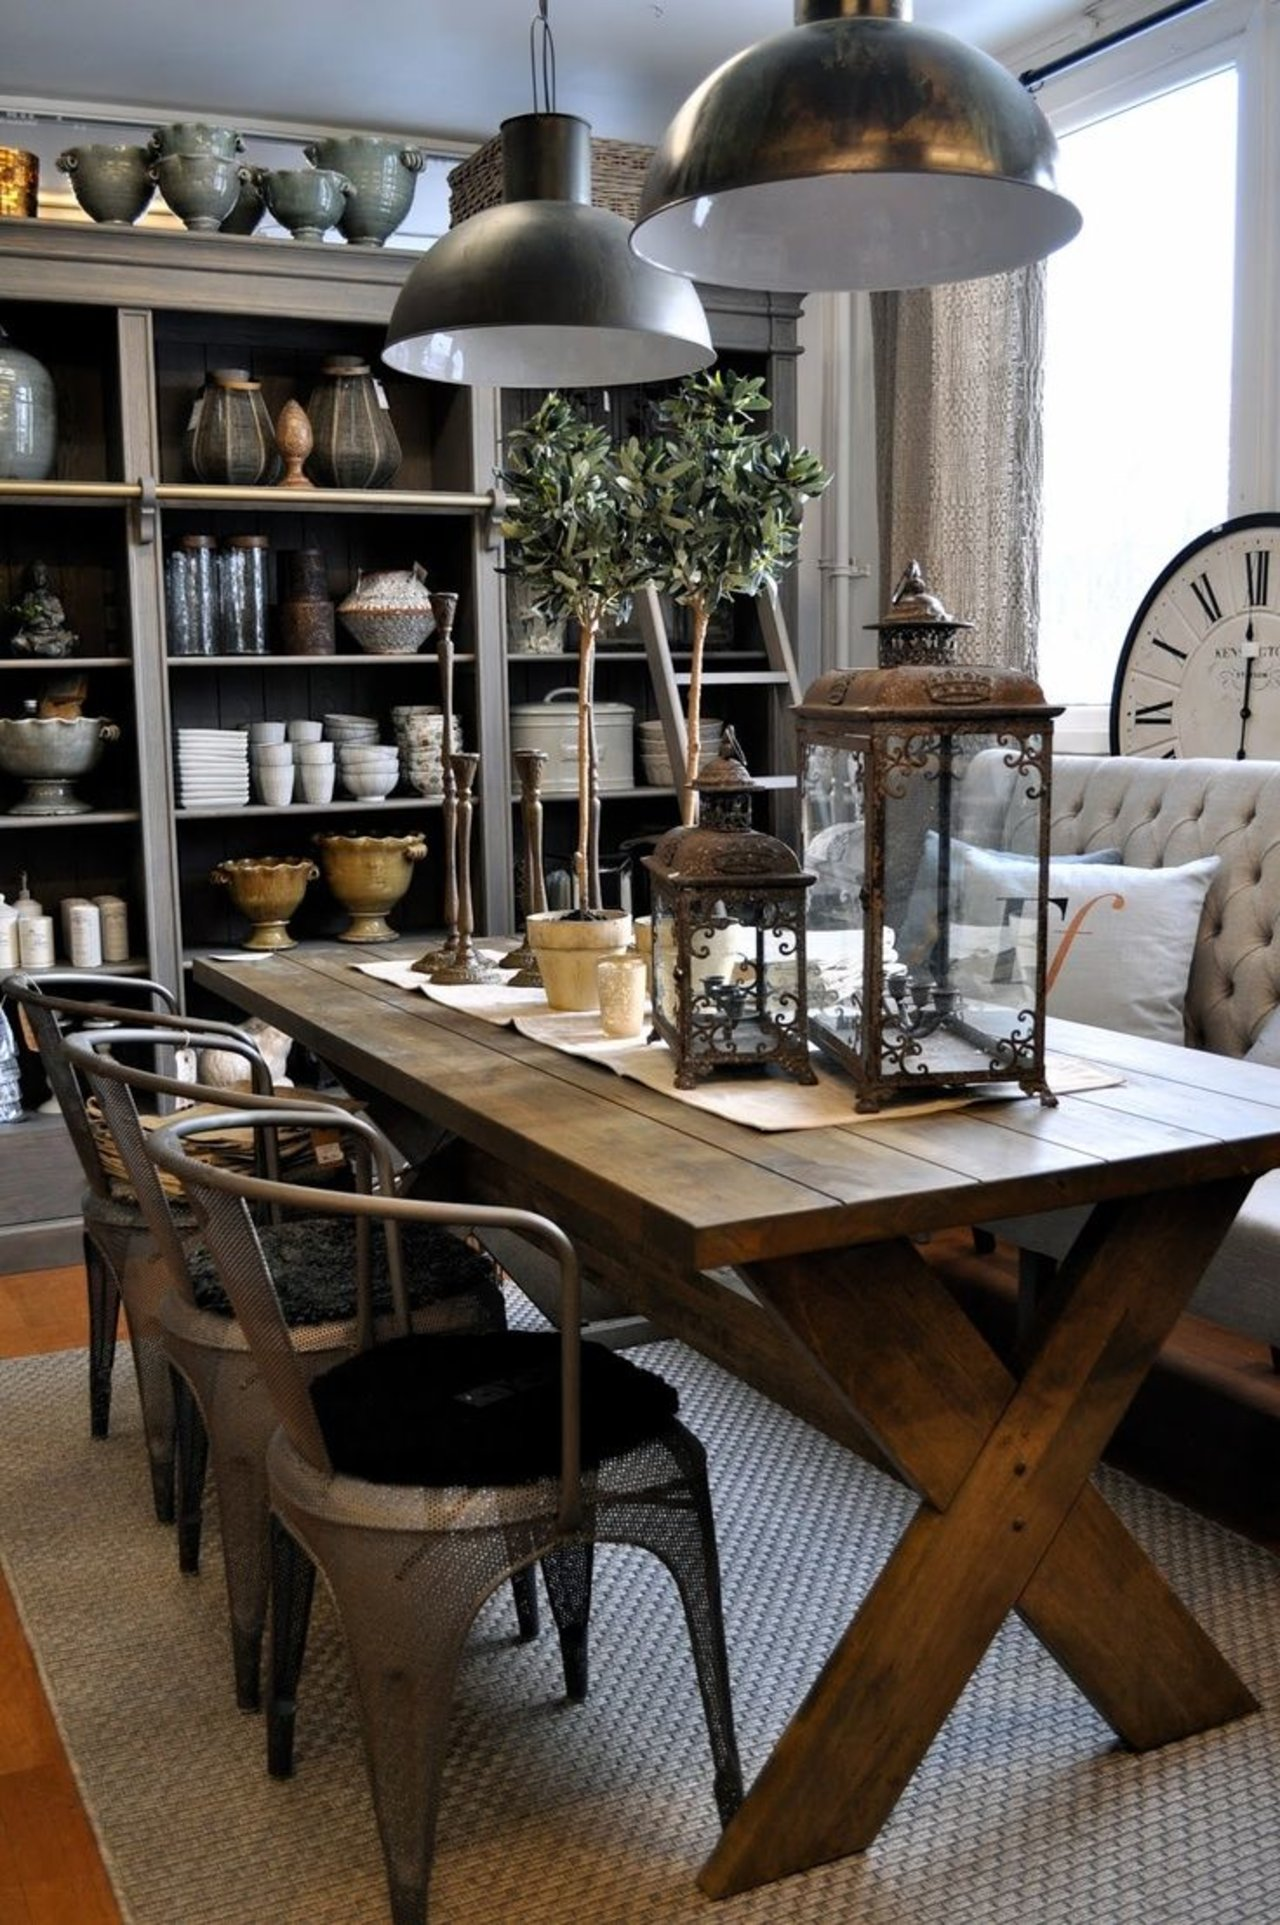 Real/Deal/Steal: An Elegant, Rustic Dining Room